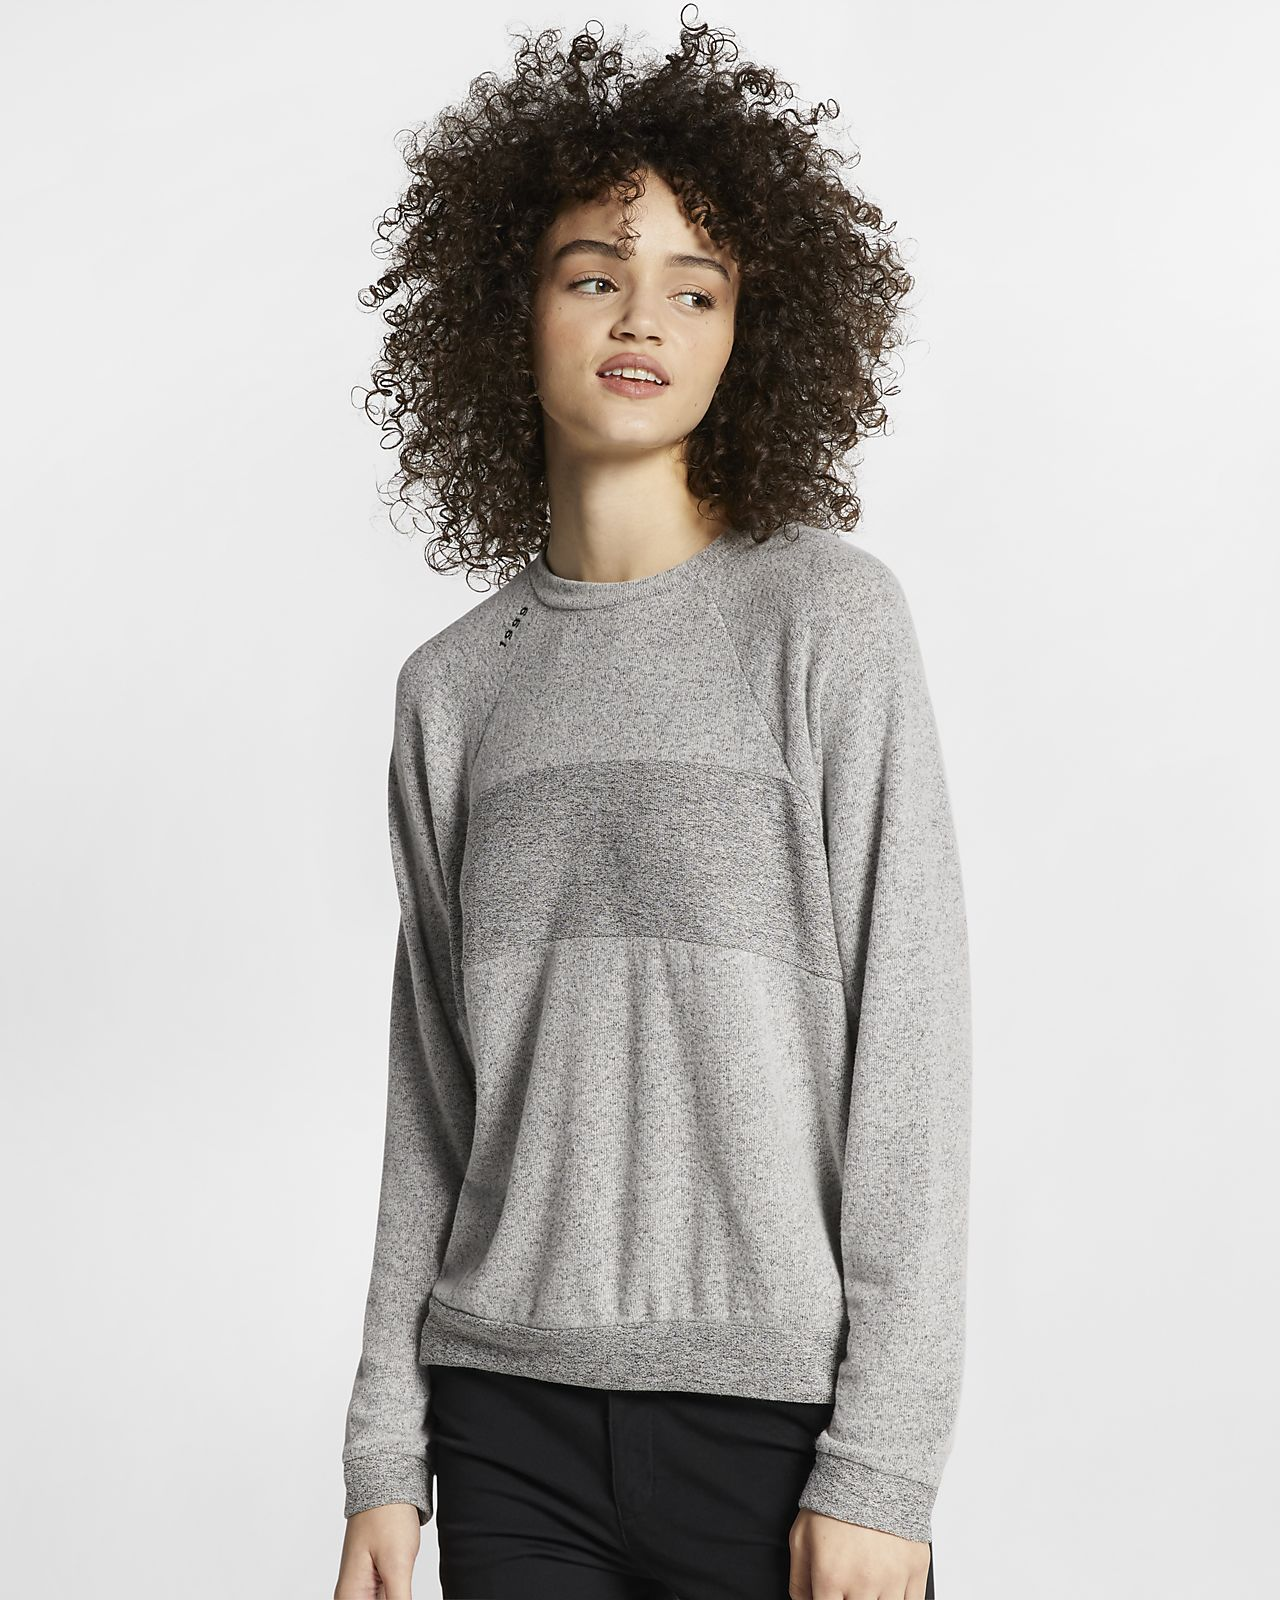 Hurley Chill Dolman Women's Fleece Crew